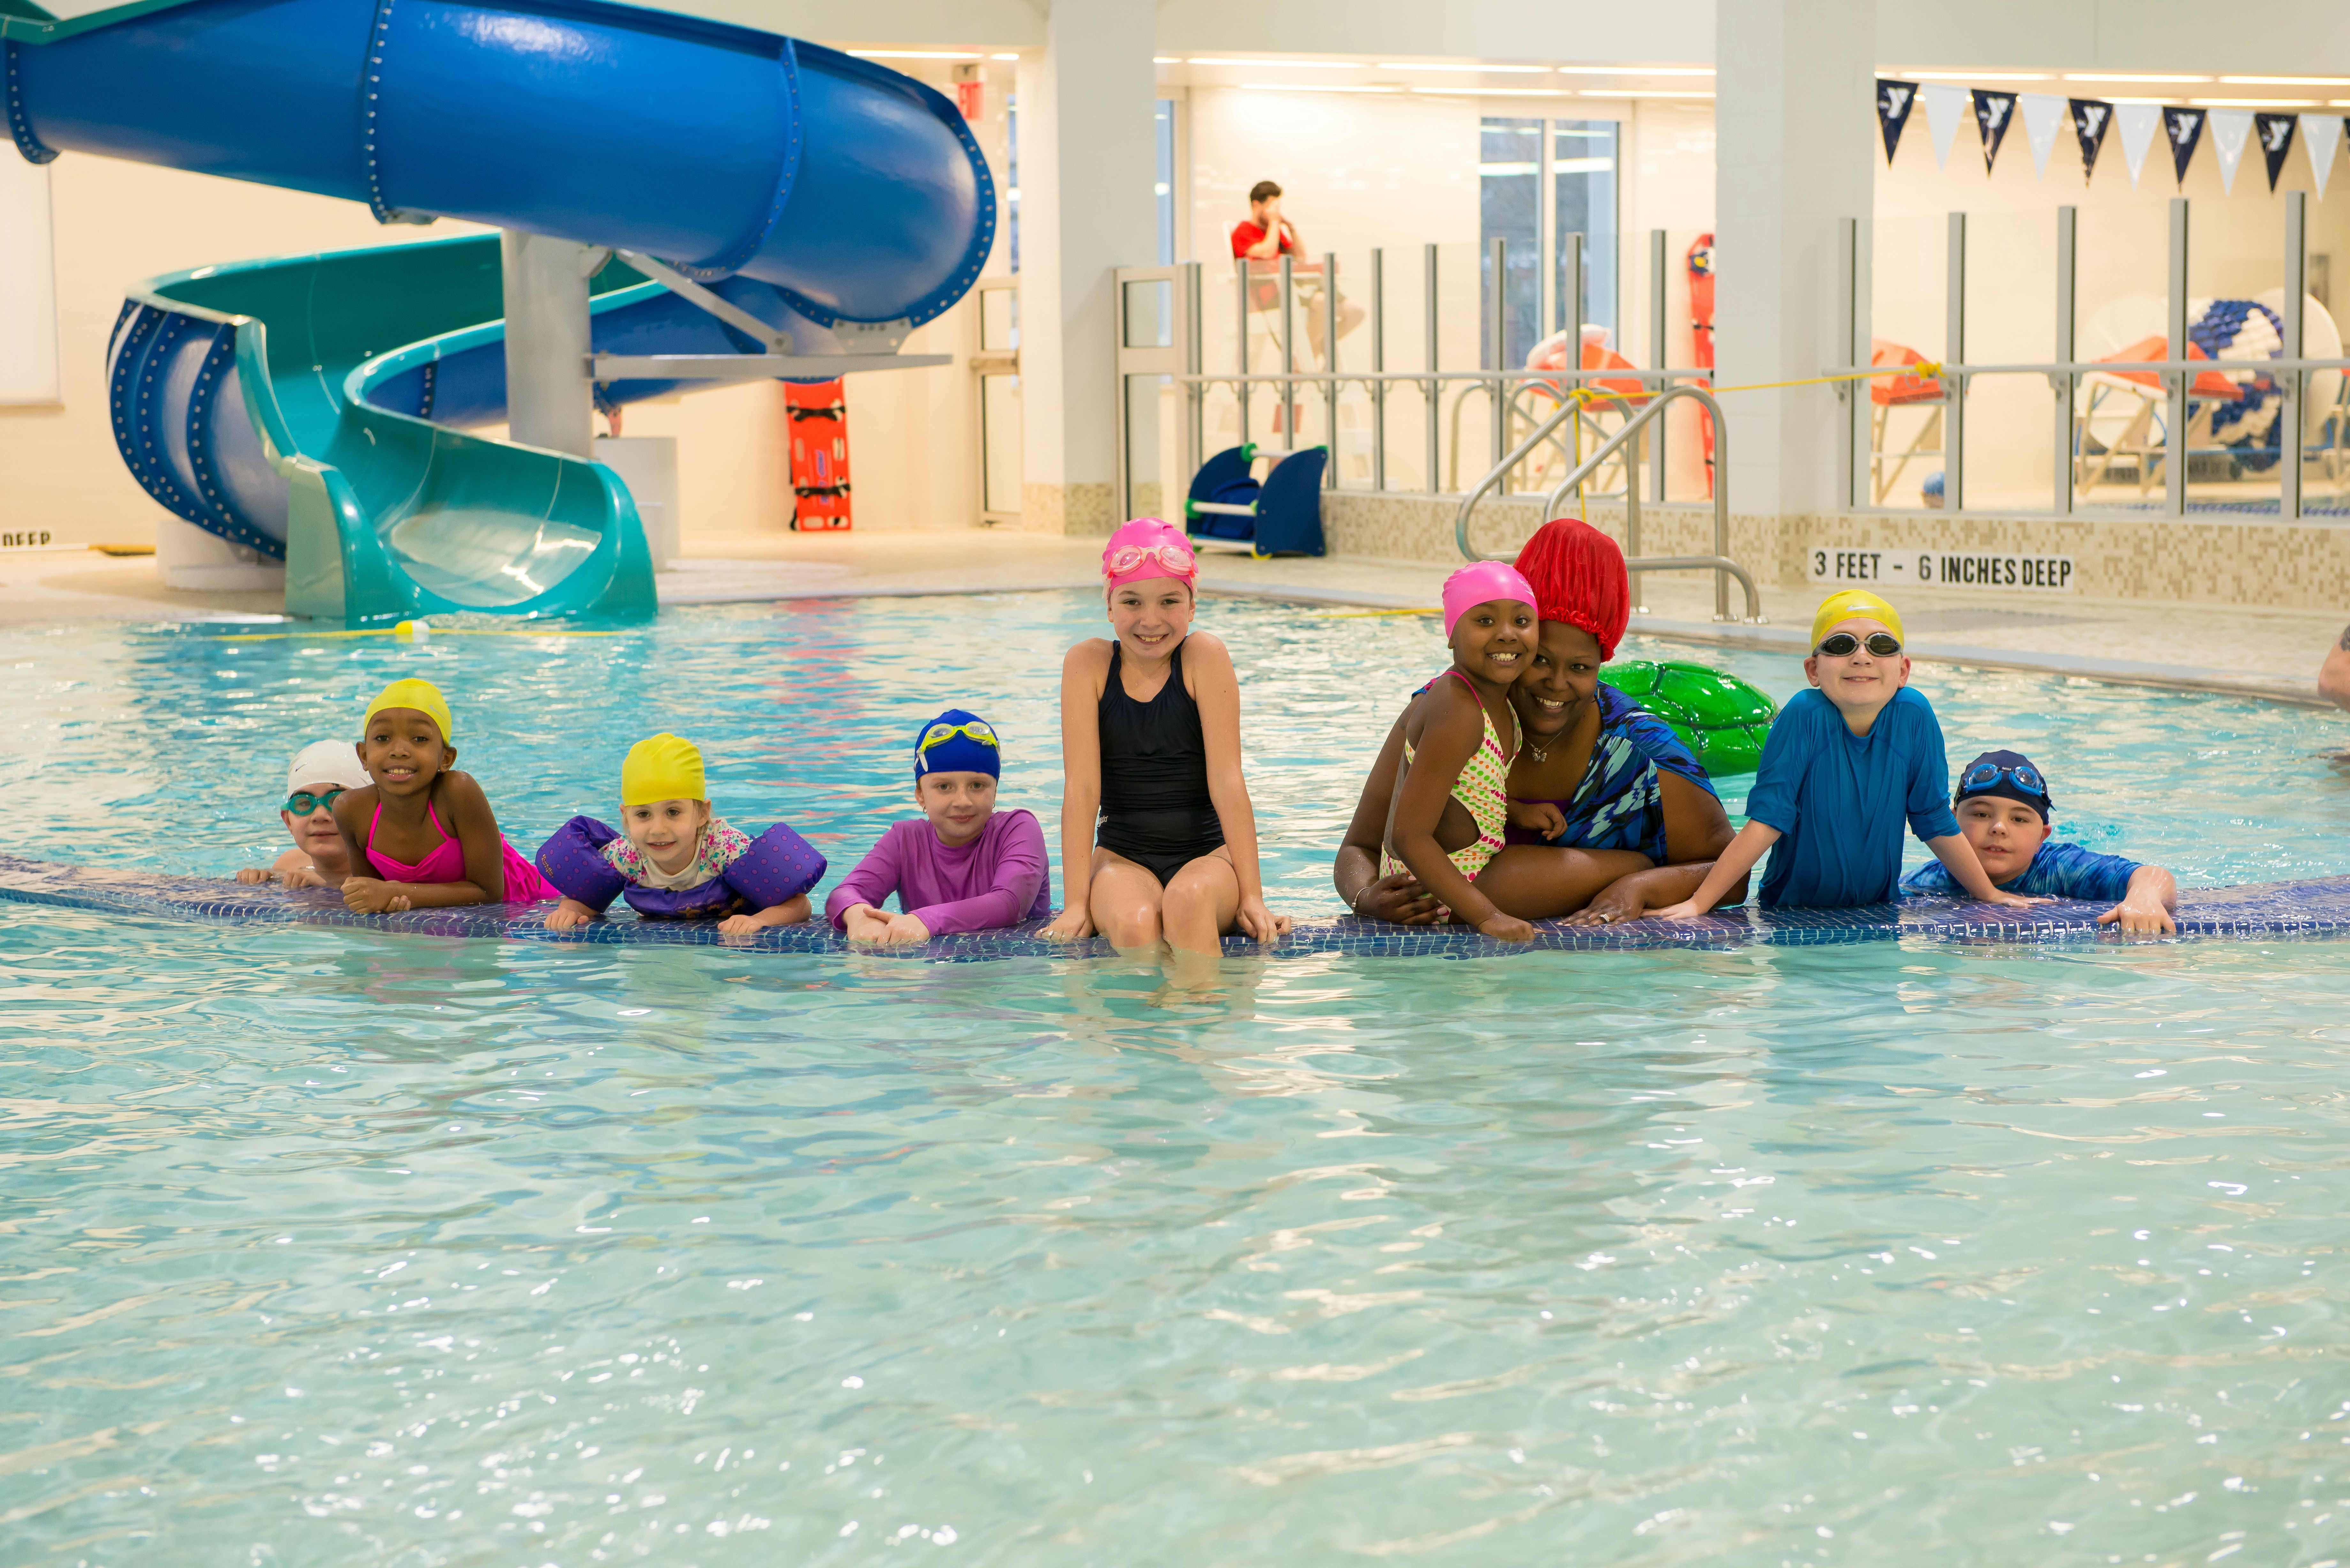 The aquatics center at the new Rockaway YMCA at Arverne by the Sea will teach thousands of local kids basic water safety and swimming skills. (Photo: Business Wire)